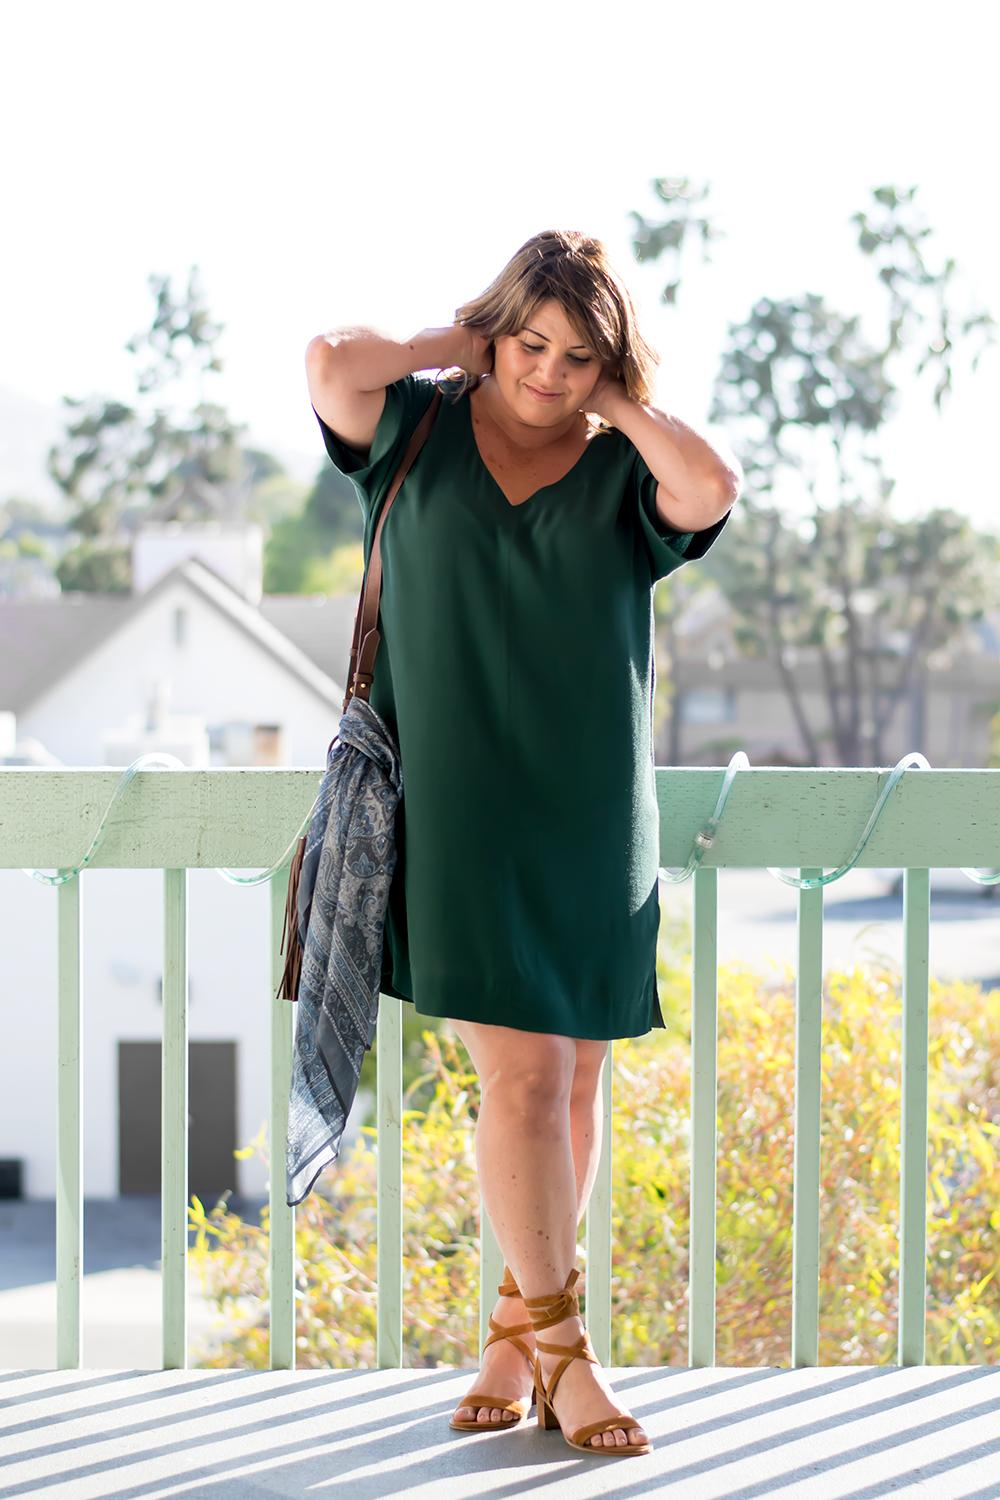 How-to-Look-Perfectly-Put-Together-in-a-5-Minute-Outfit-Barefoot-in-LA-Fashion-Blog-Style-Ideas-Outfits-DSC_0857